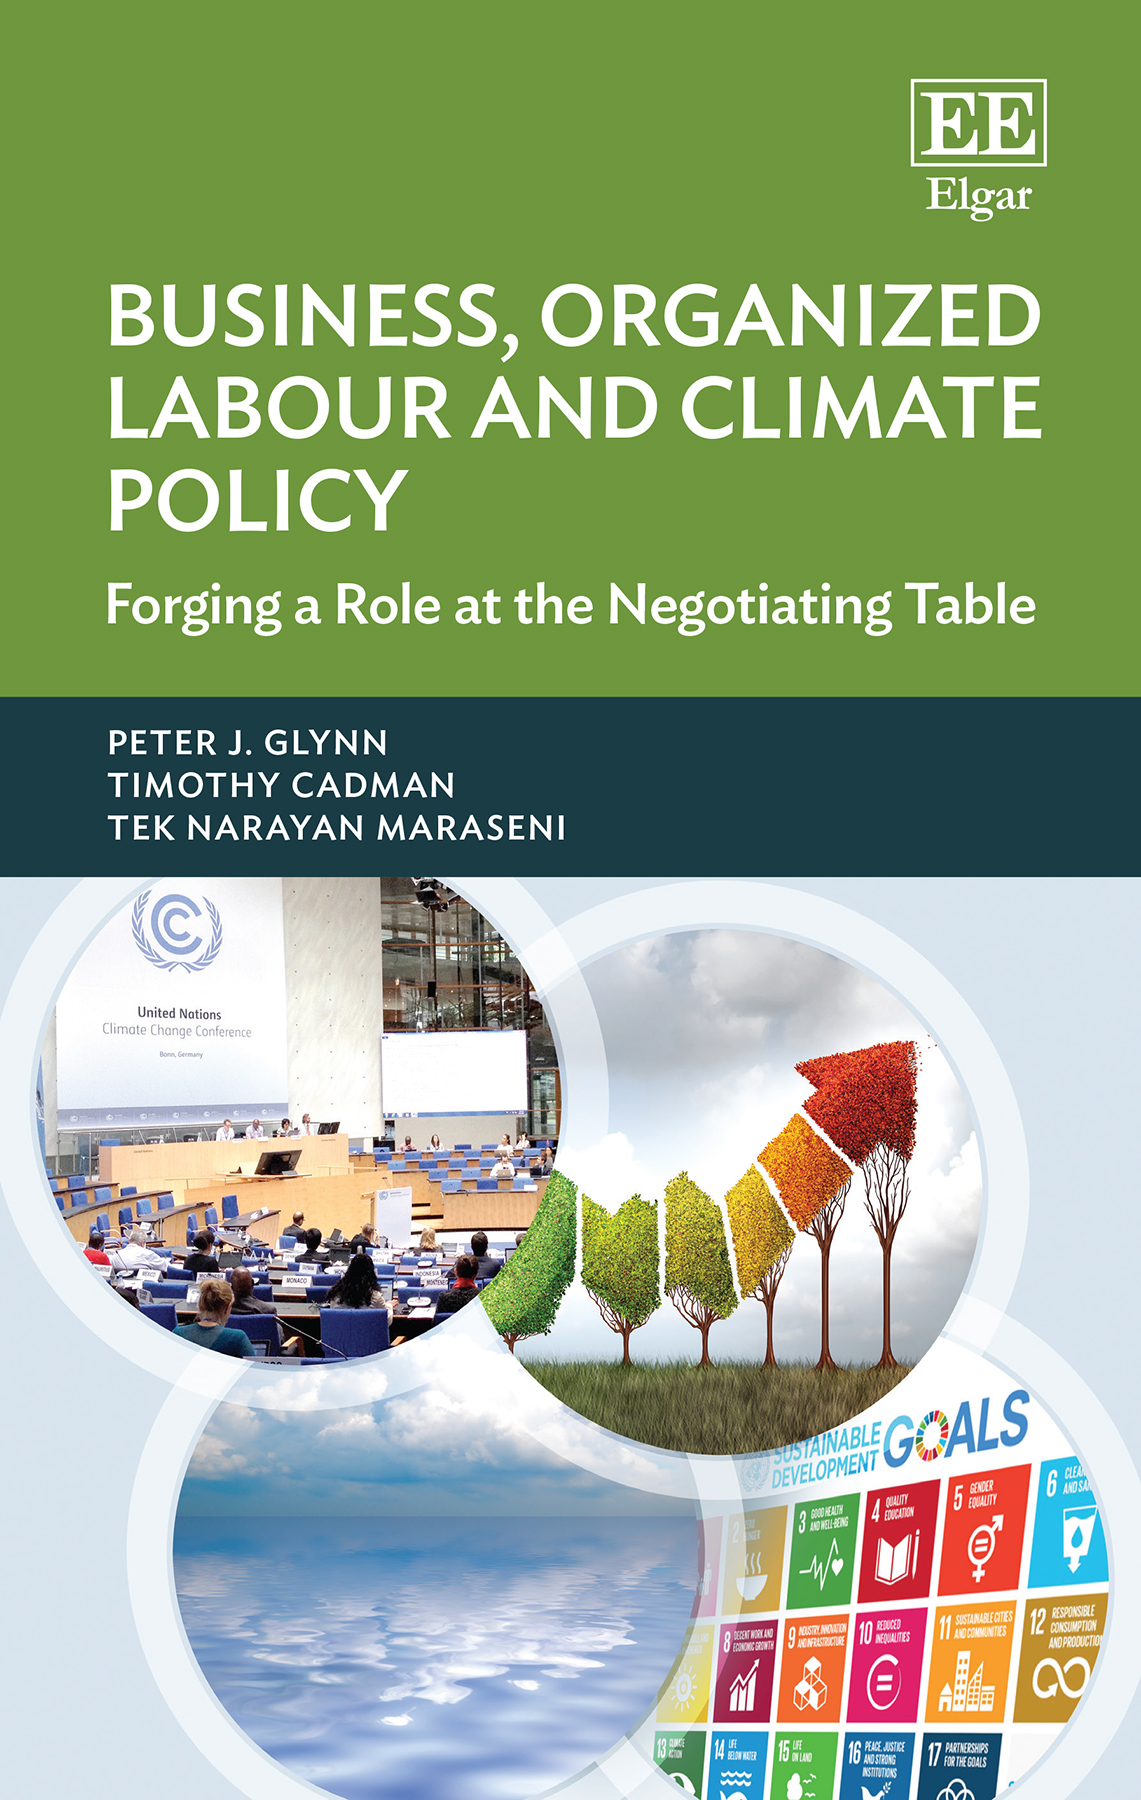 Download Ebook Business, Organized Labour and Climate Policy by Peter J. Glynn Pdf